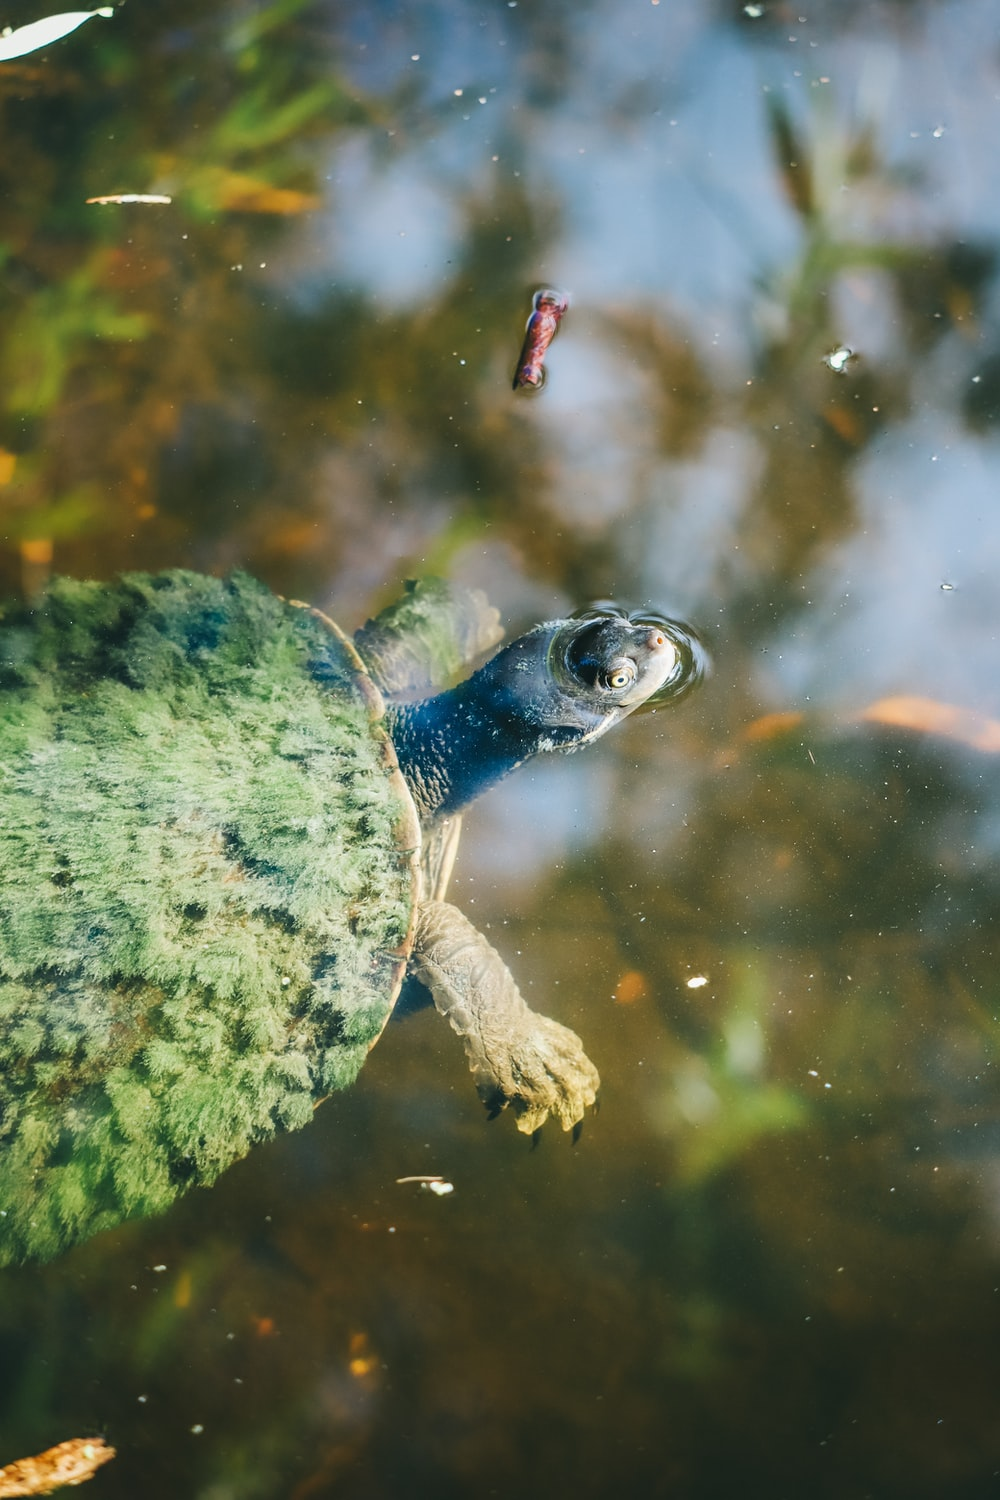 green and brown turtle in water